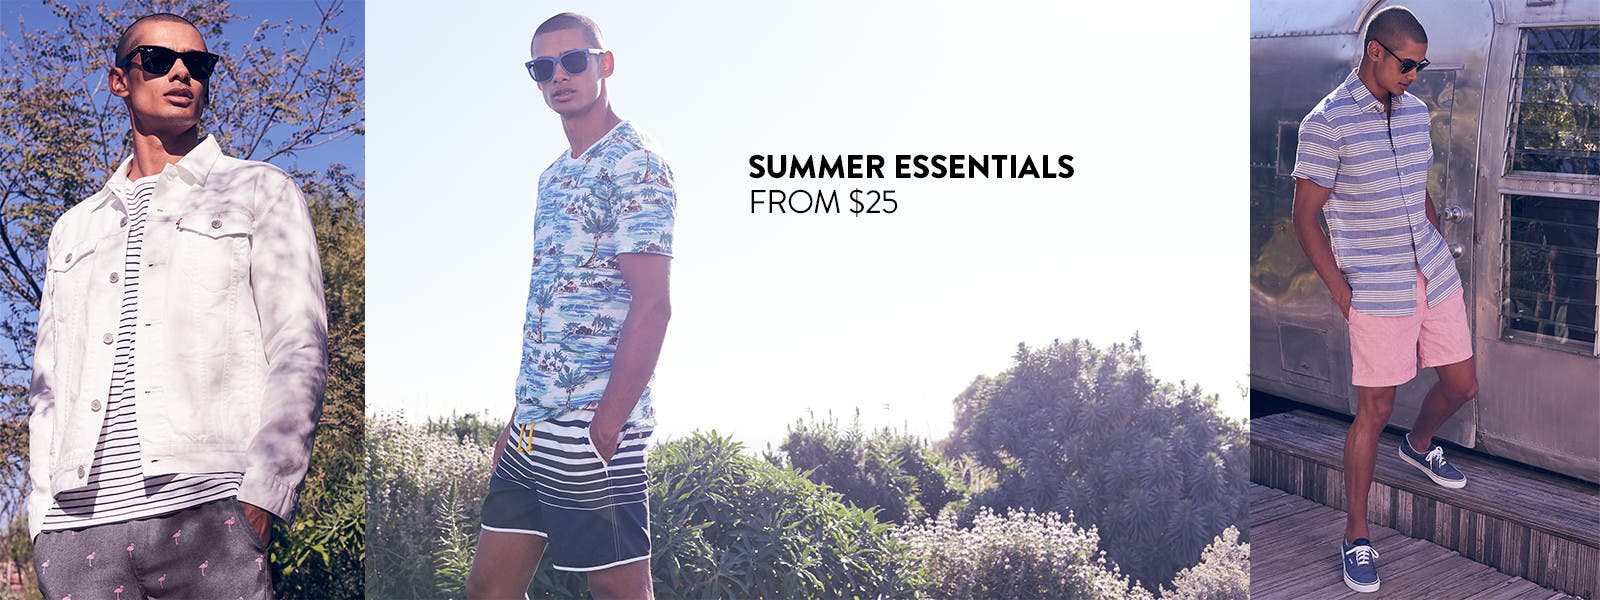 Summer essentials from $25.